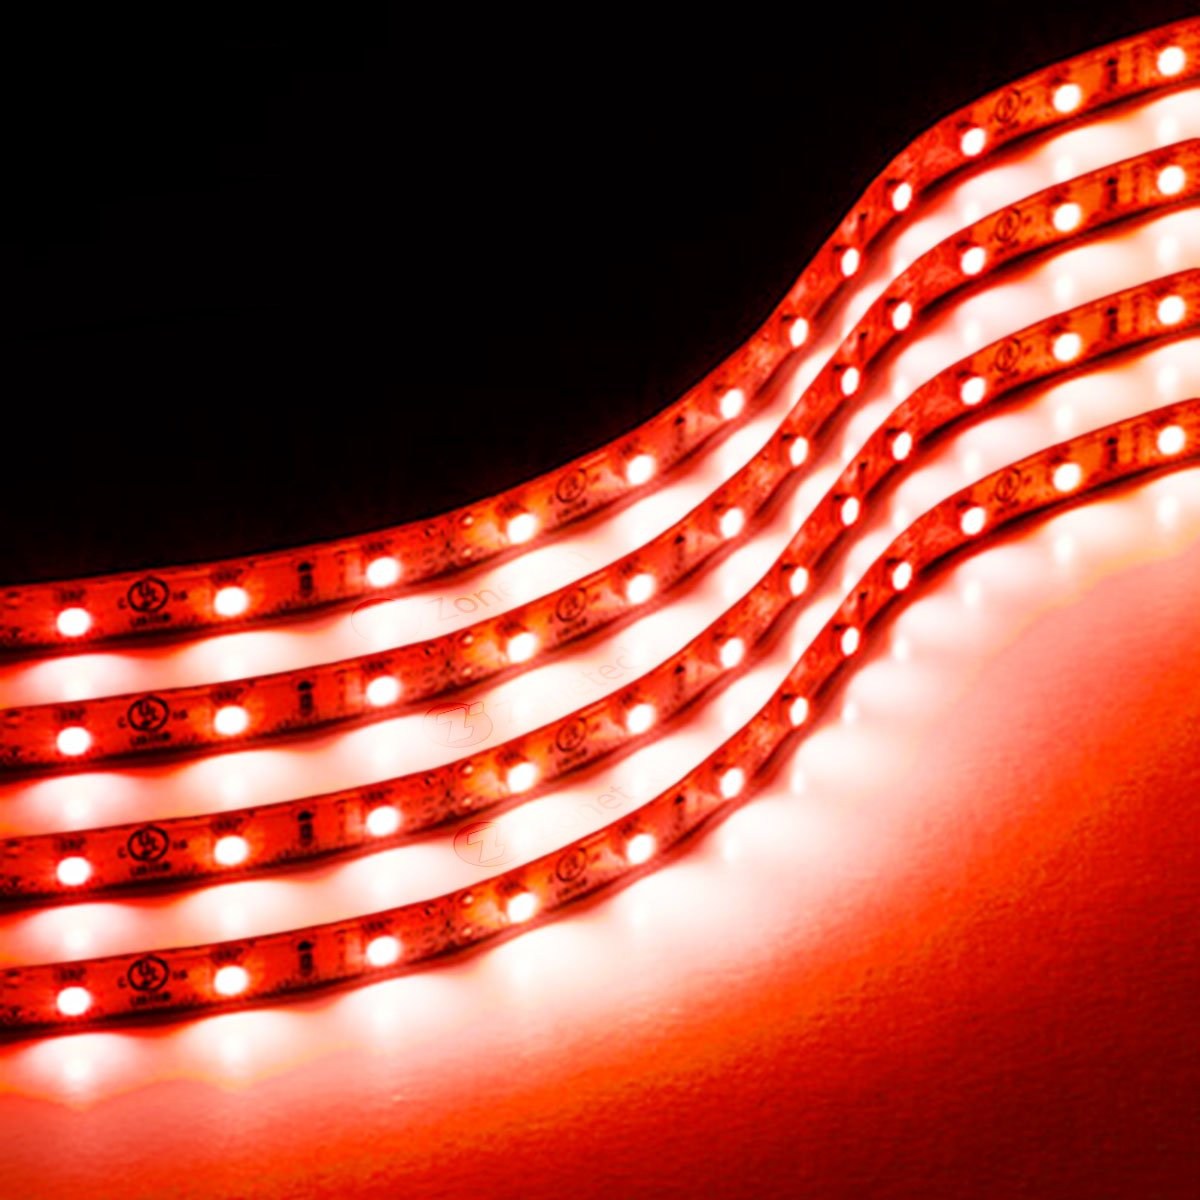 Amazon zone tech 30cm flexible waterproof red light strips 4 amazon zone tech 30cm flexible waterproof red light strips 4 pack led car flexible waterproof red light strips automotive aloadofball Gallery